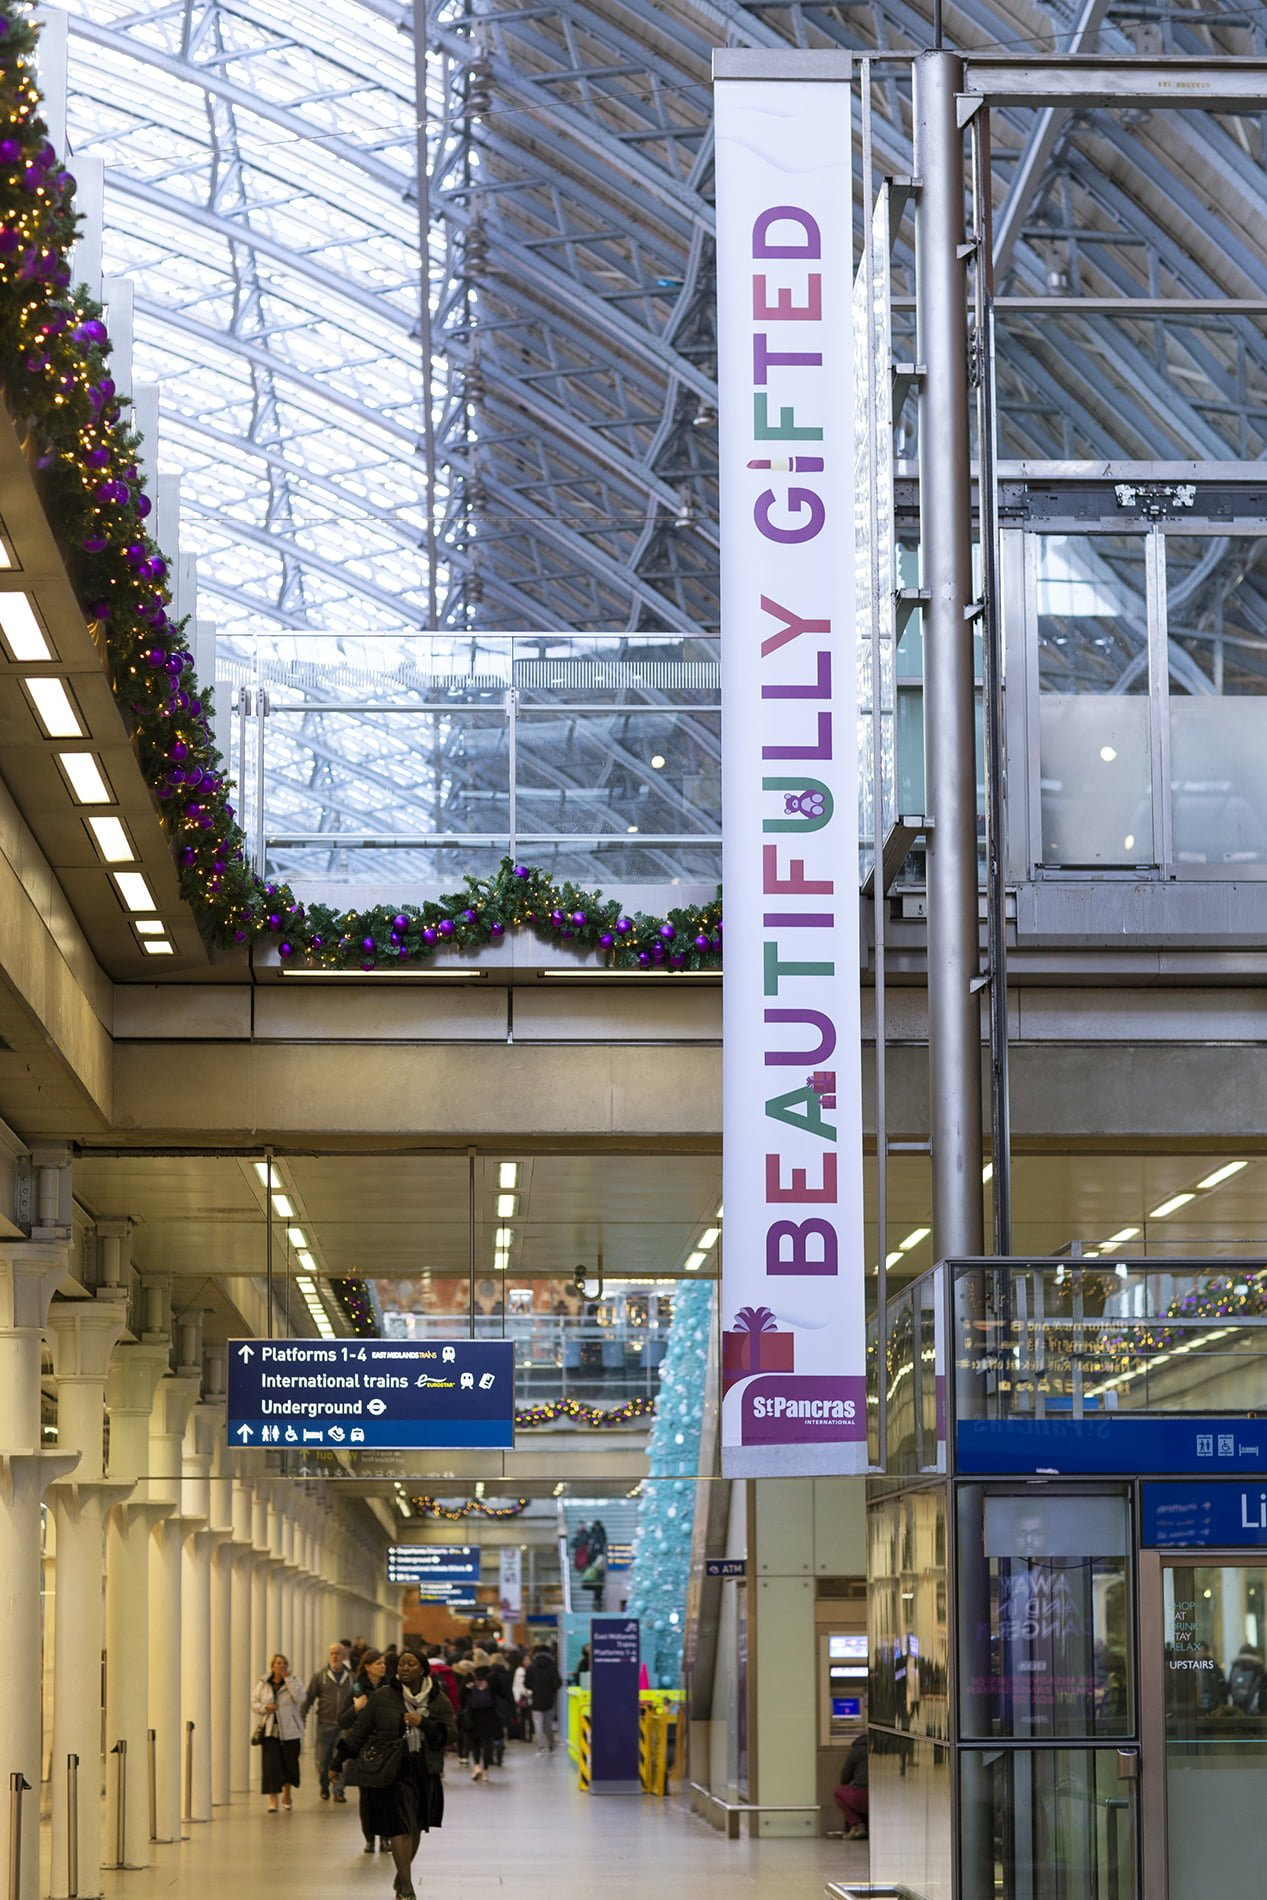 Christmas campaign graphics for HS1 in st pancras station